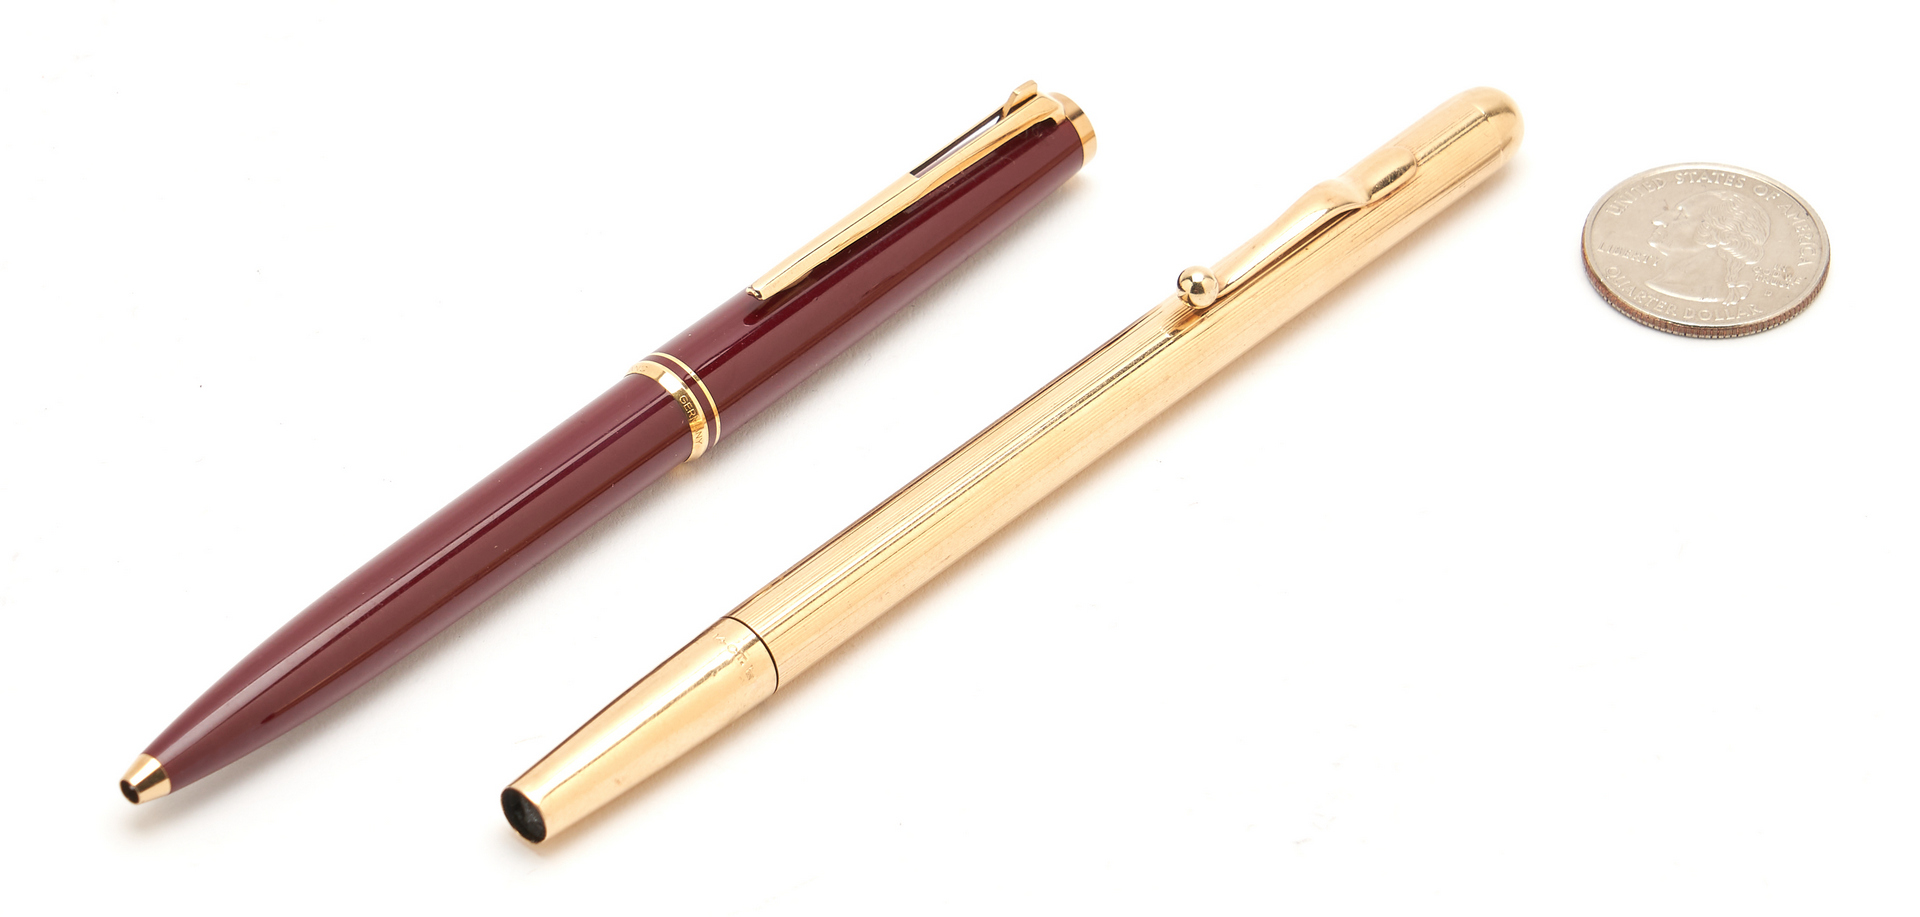 Lot 1217: Tiffany 14K Pencil and Montblanc Pen